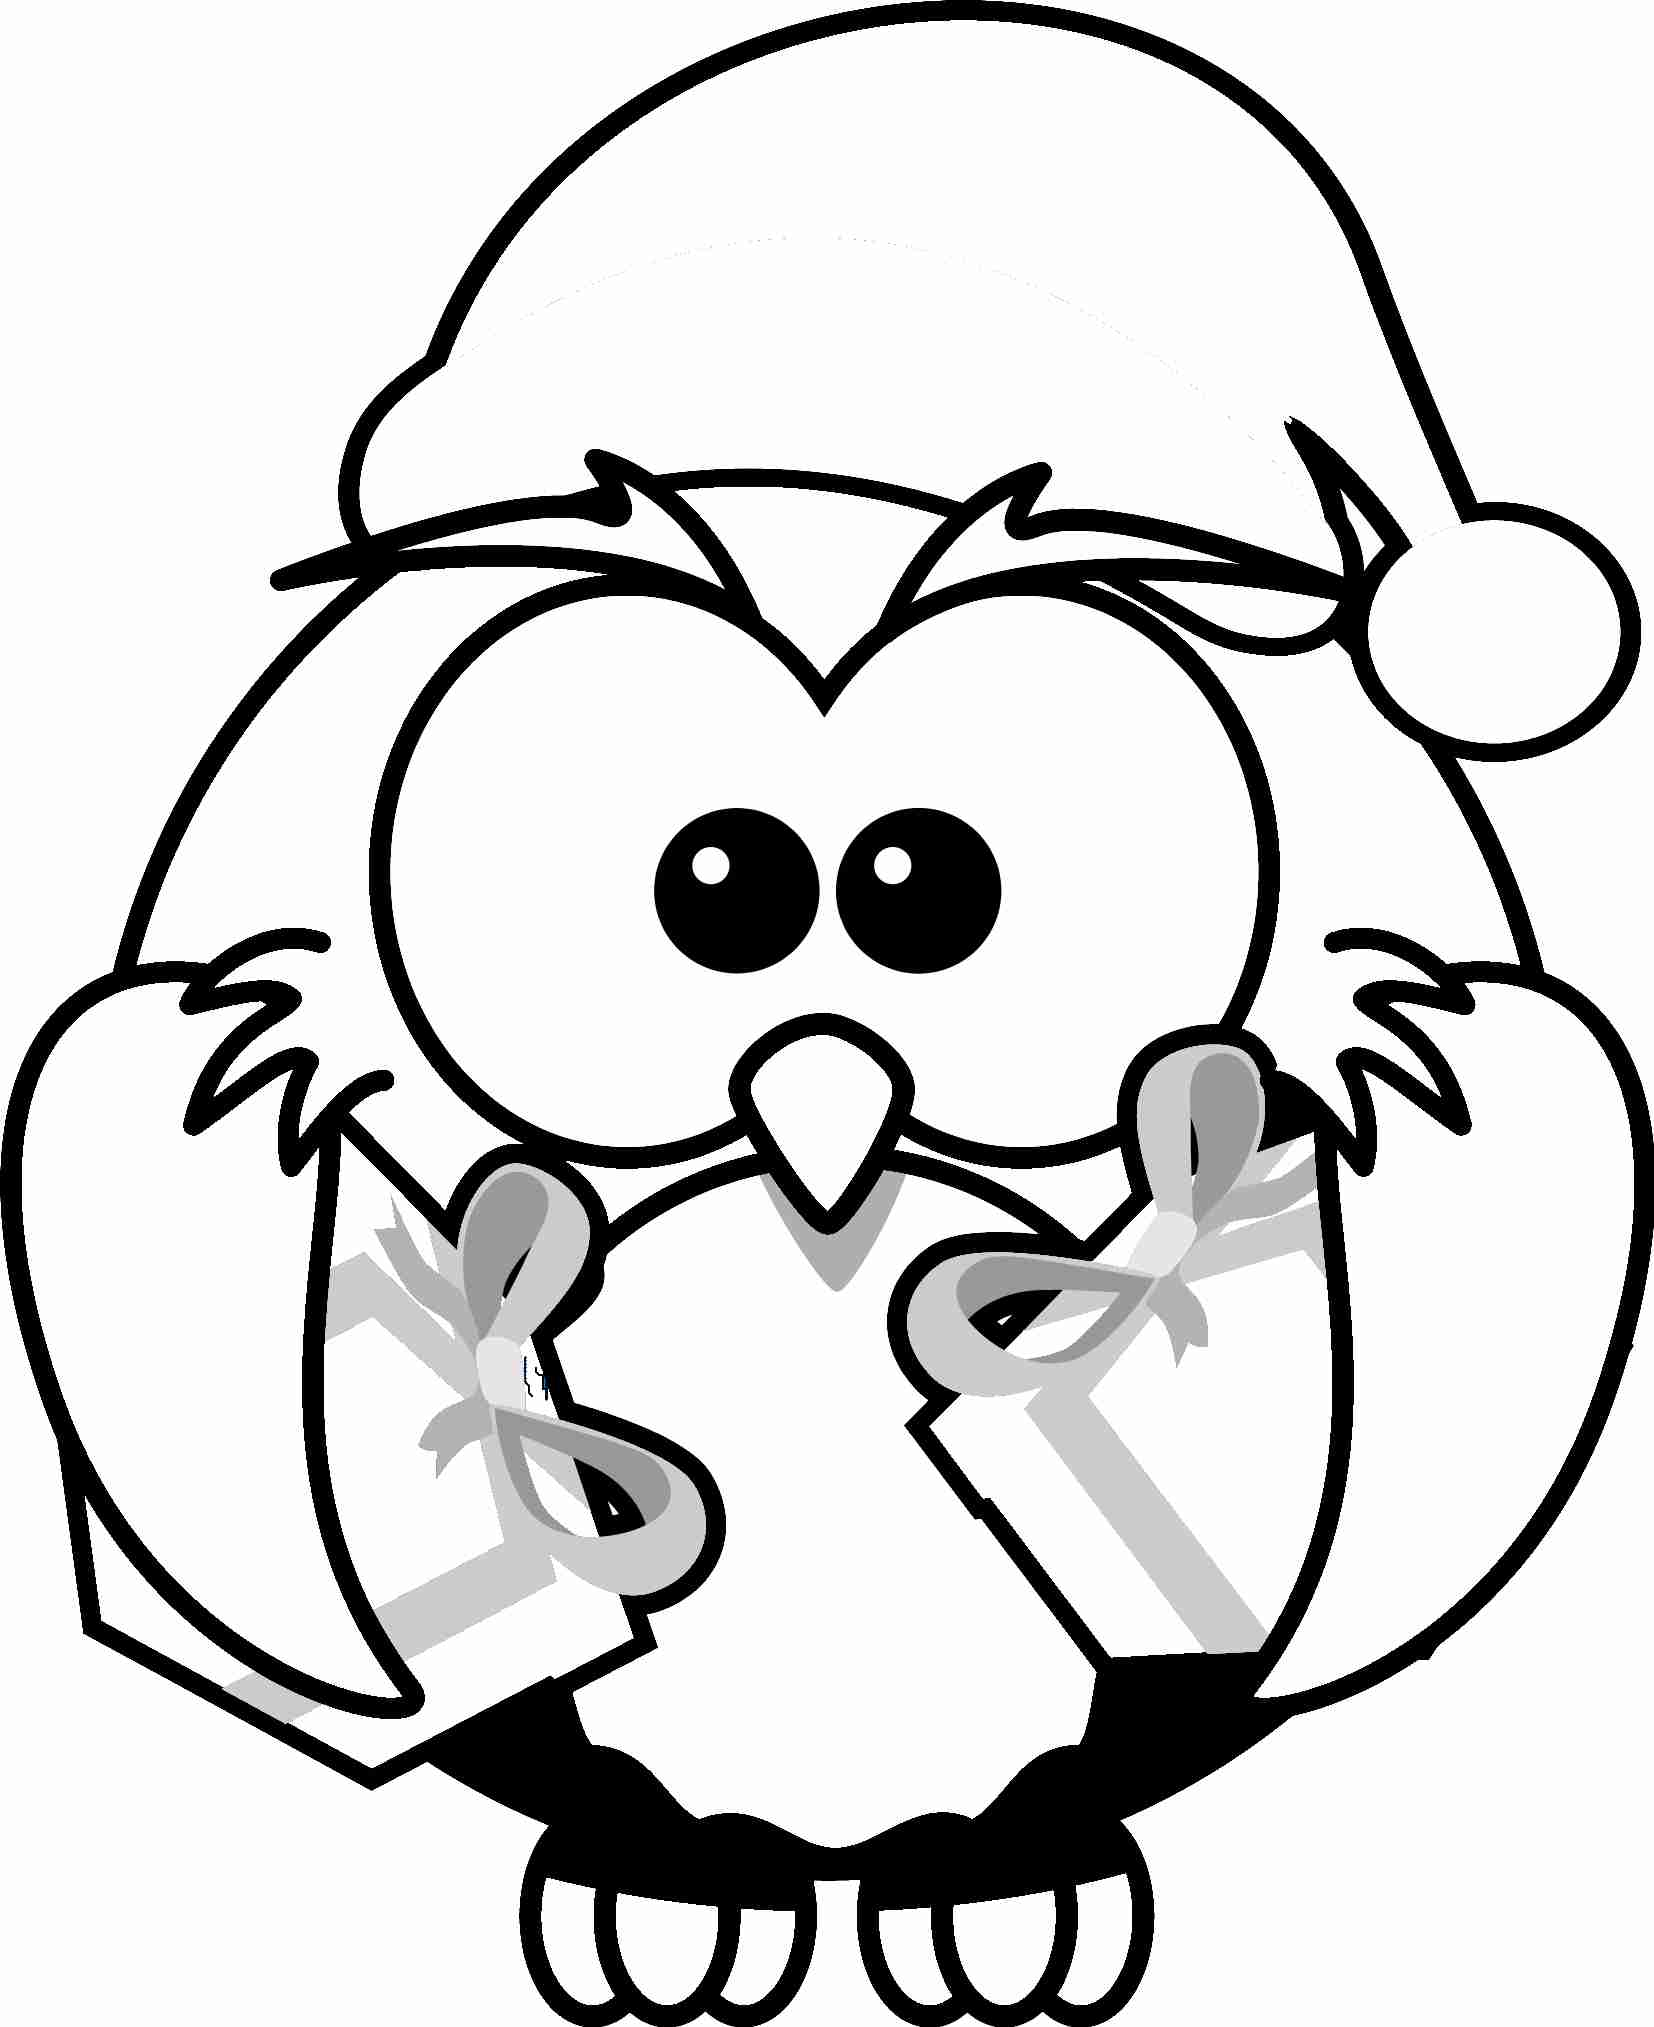 Christmas Coloring Pages Google Search With Free Father Pictures To Colour Download Clip Art